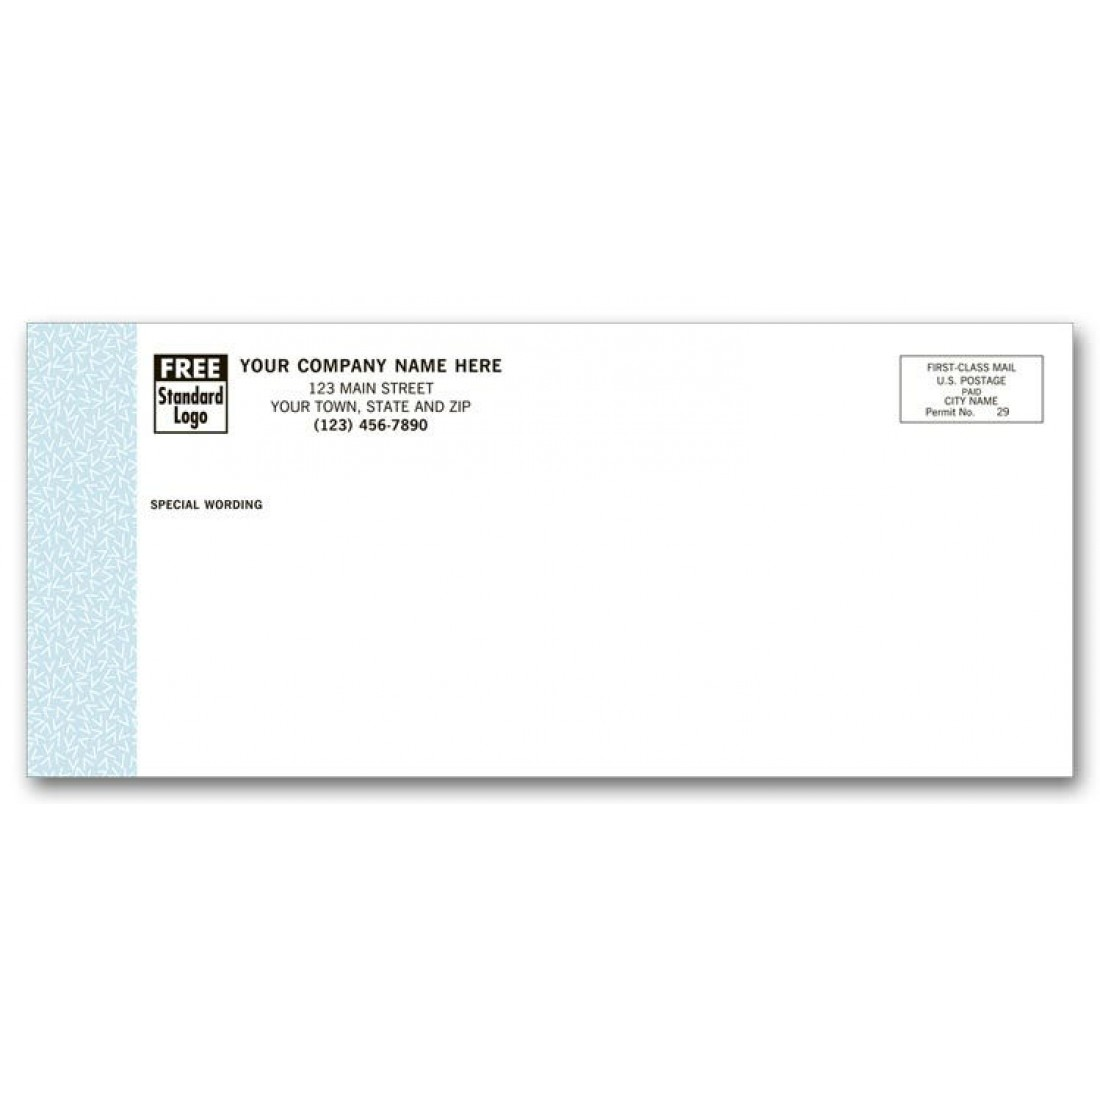 business envelope size